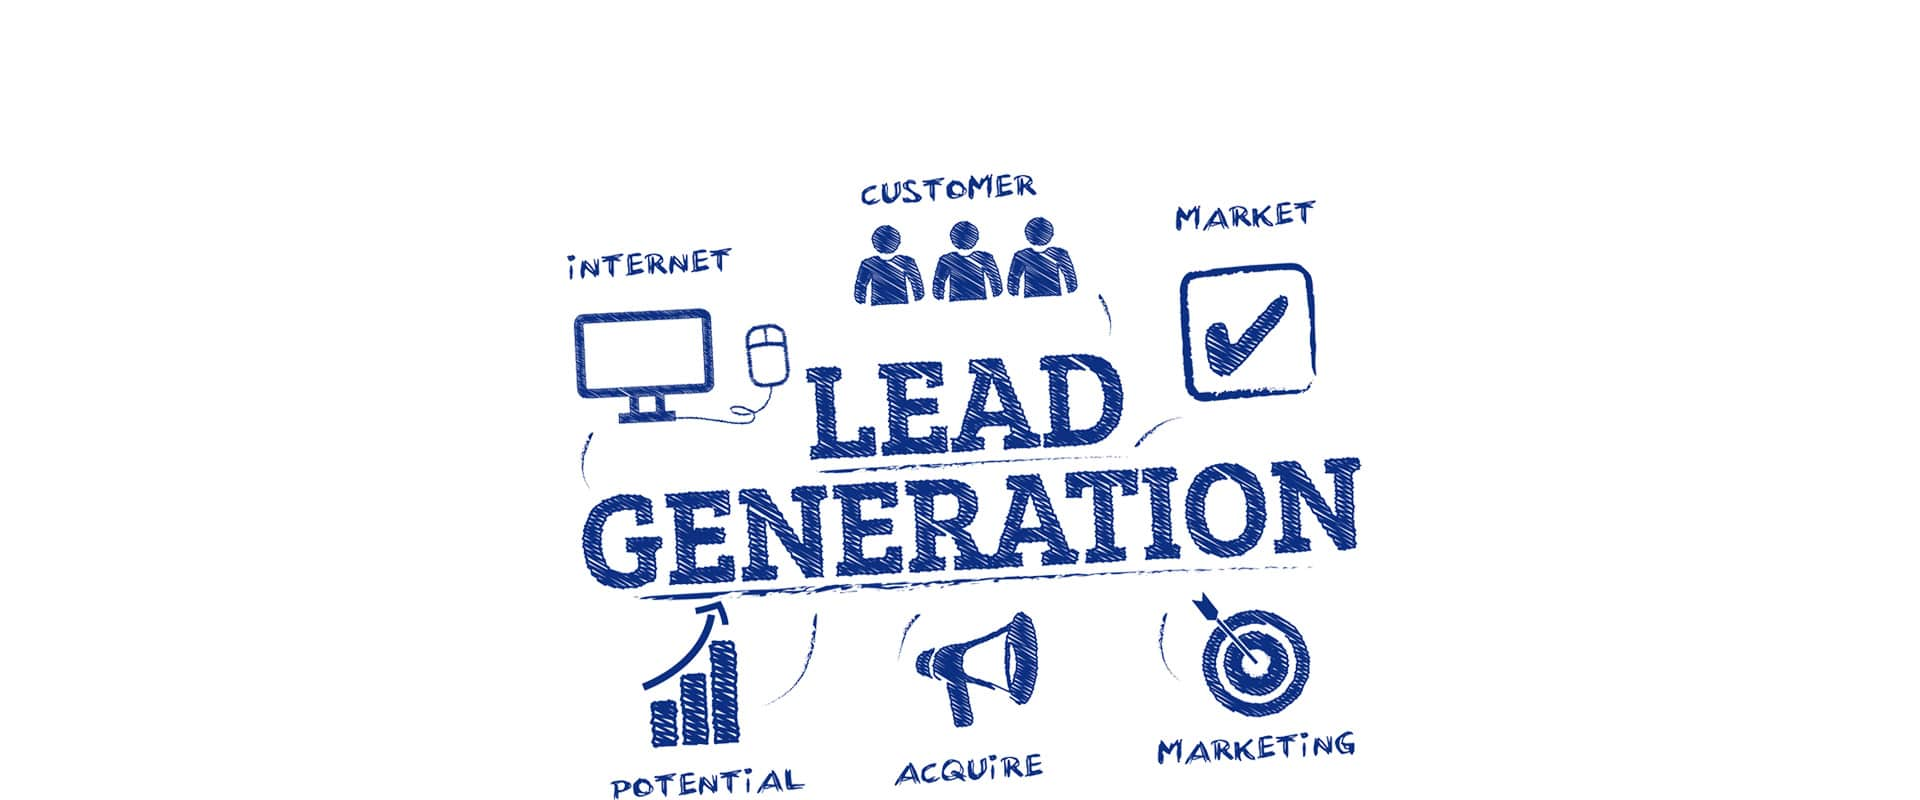 Lead Generation Programs Buy And Sell  Pay Per Call. Lowest Mortgage Rates California. Subaru Legacy Outback Sedan 404 Error Nginx. Zimmer Twins Movie Maker Self Payroll Service. Moen 4570 Faucet Repair One Direction Tivkets. Rough Cut Capacity Planning Food Safety Labs. Electrical Engineer Working Conditions. Hotels Around New York Fairpoint Tech Support. Dr Of Physical Therapy Music Industry Majors